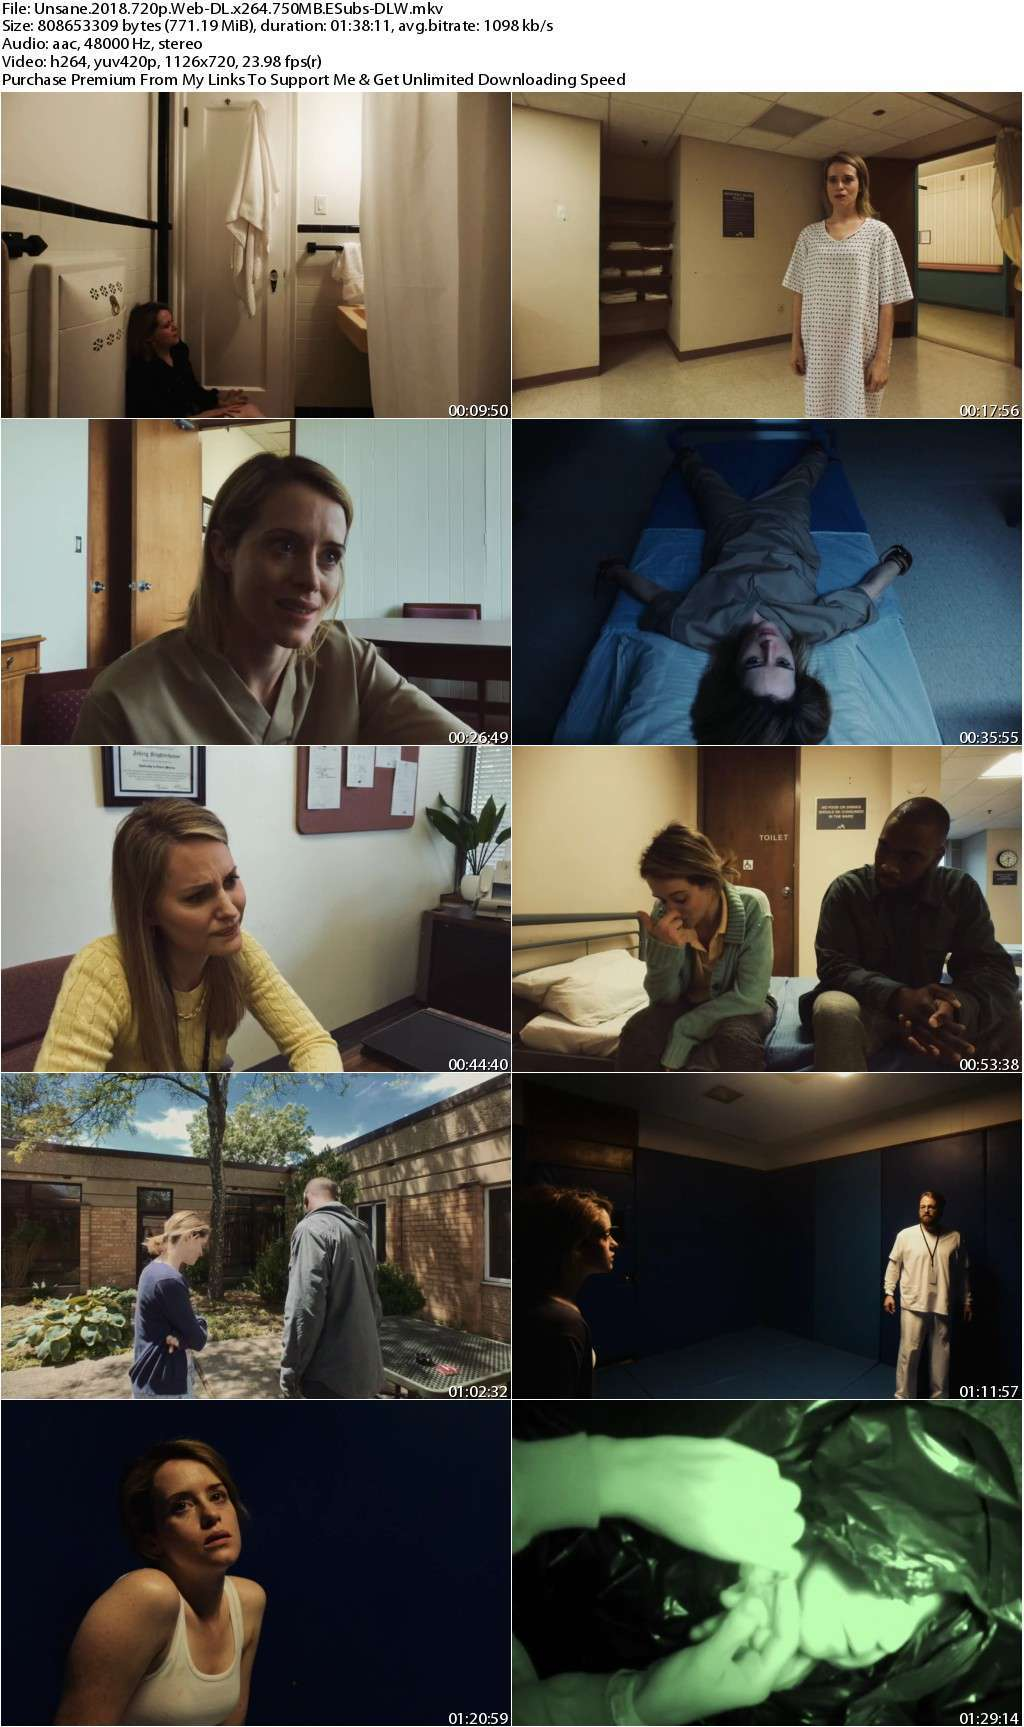 Unsane (2018) 720p WEB-DL x264 750MB ESubs-DLW